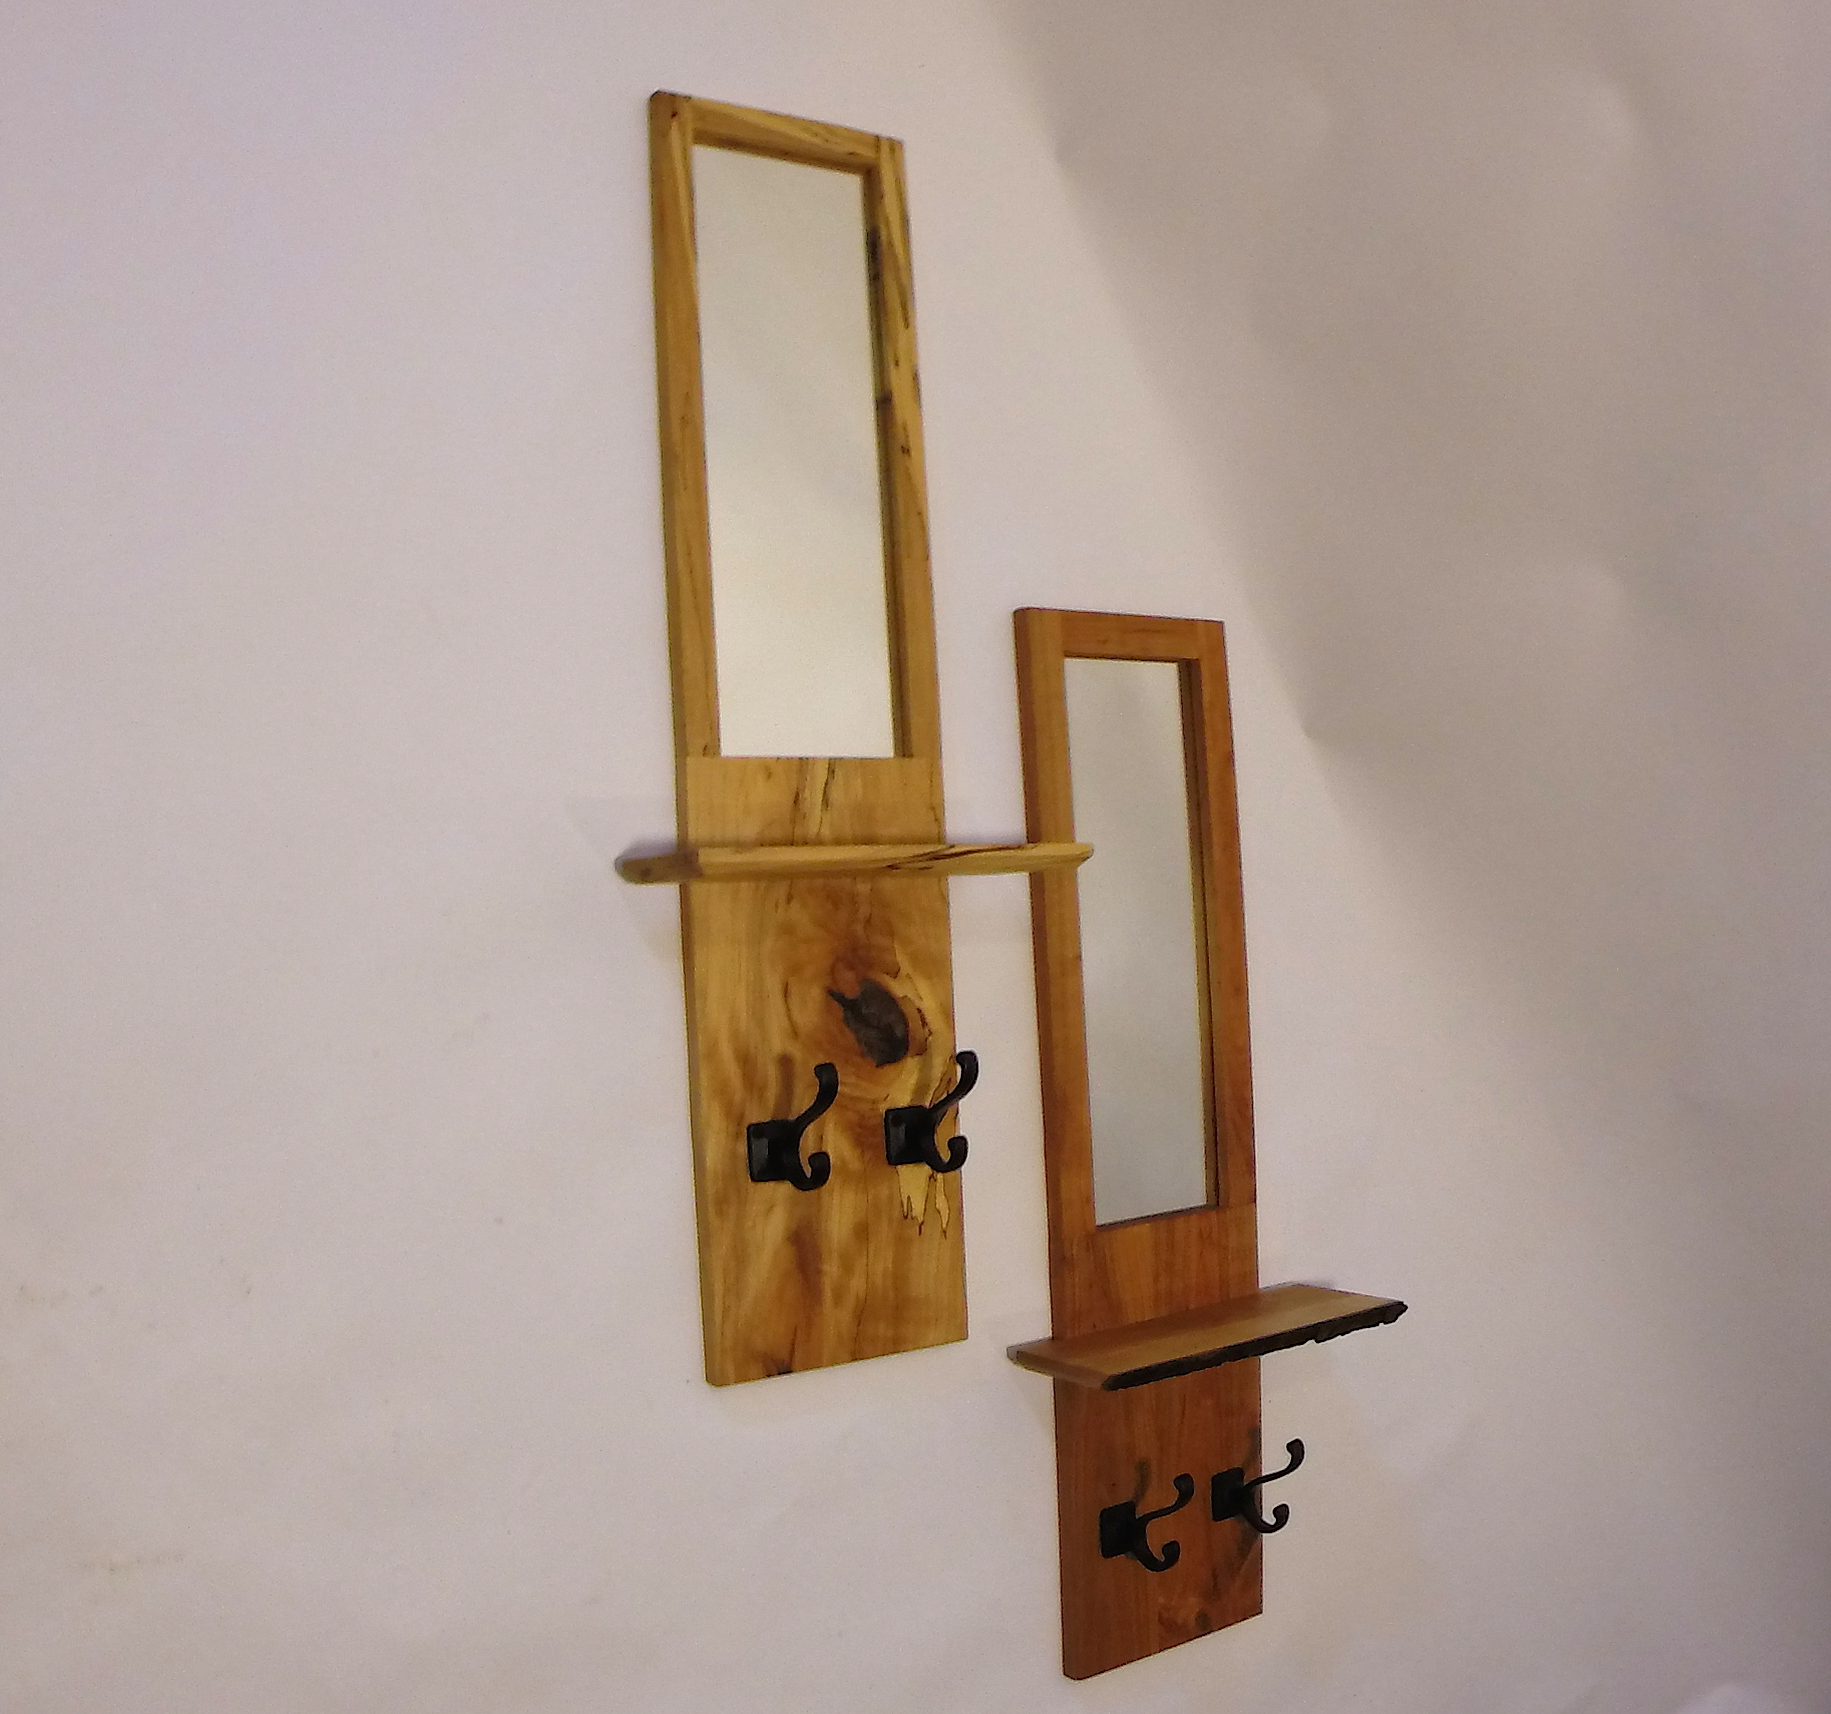 Wall Mirrors With Hooks And Shelf For Well Liked Wall Mirrors With Shelves And Hooks – Dwyer Wood (View 8 of 20)